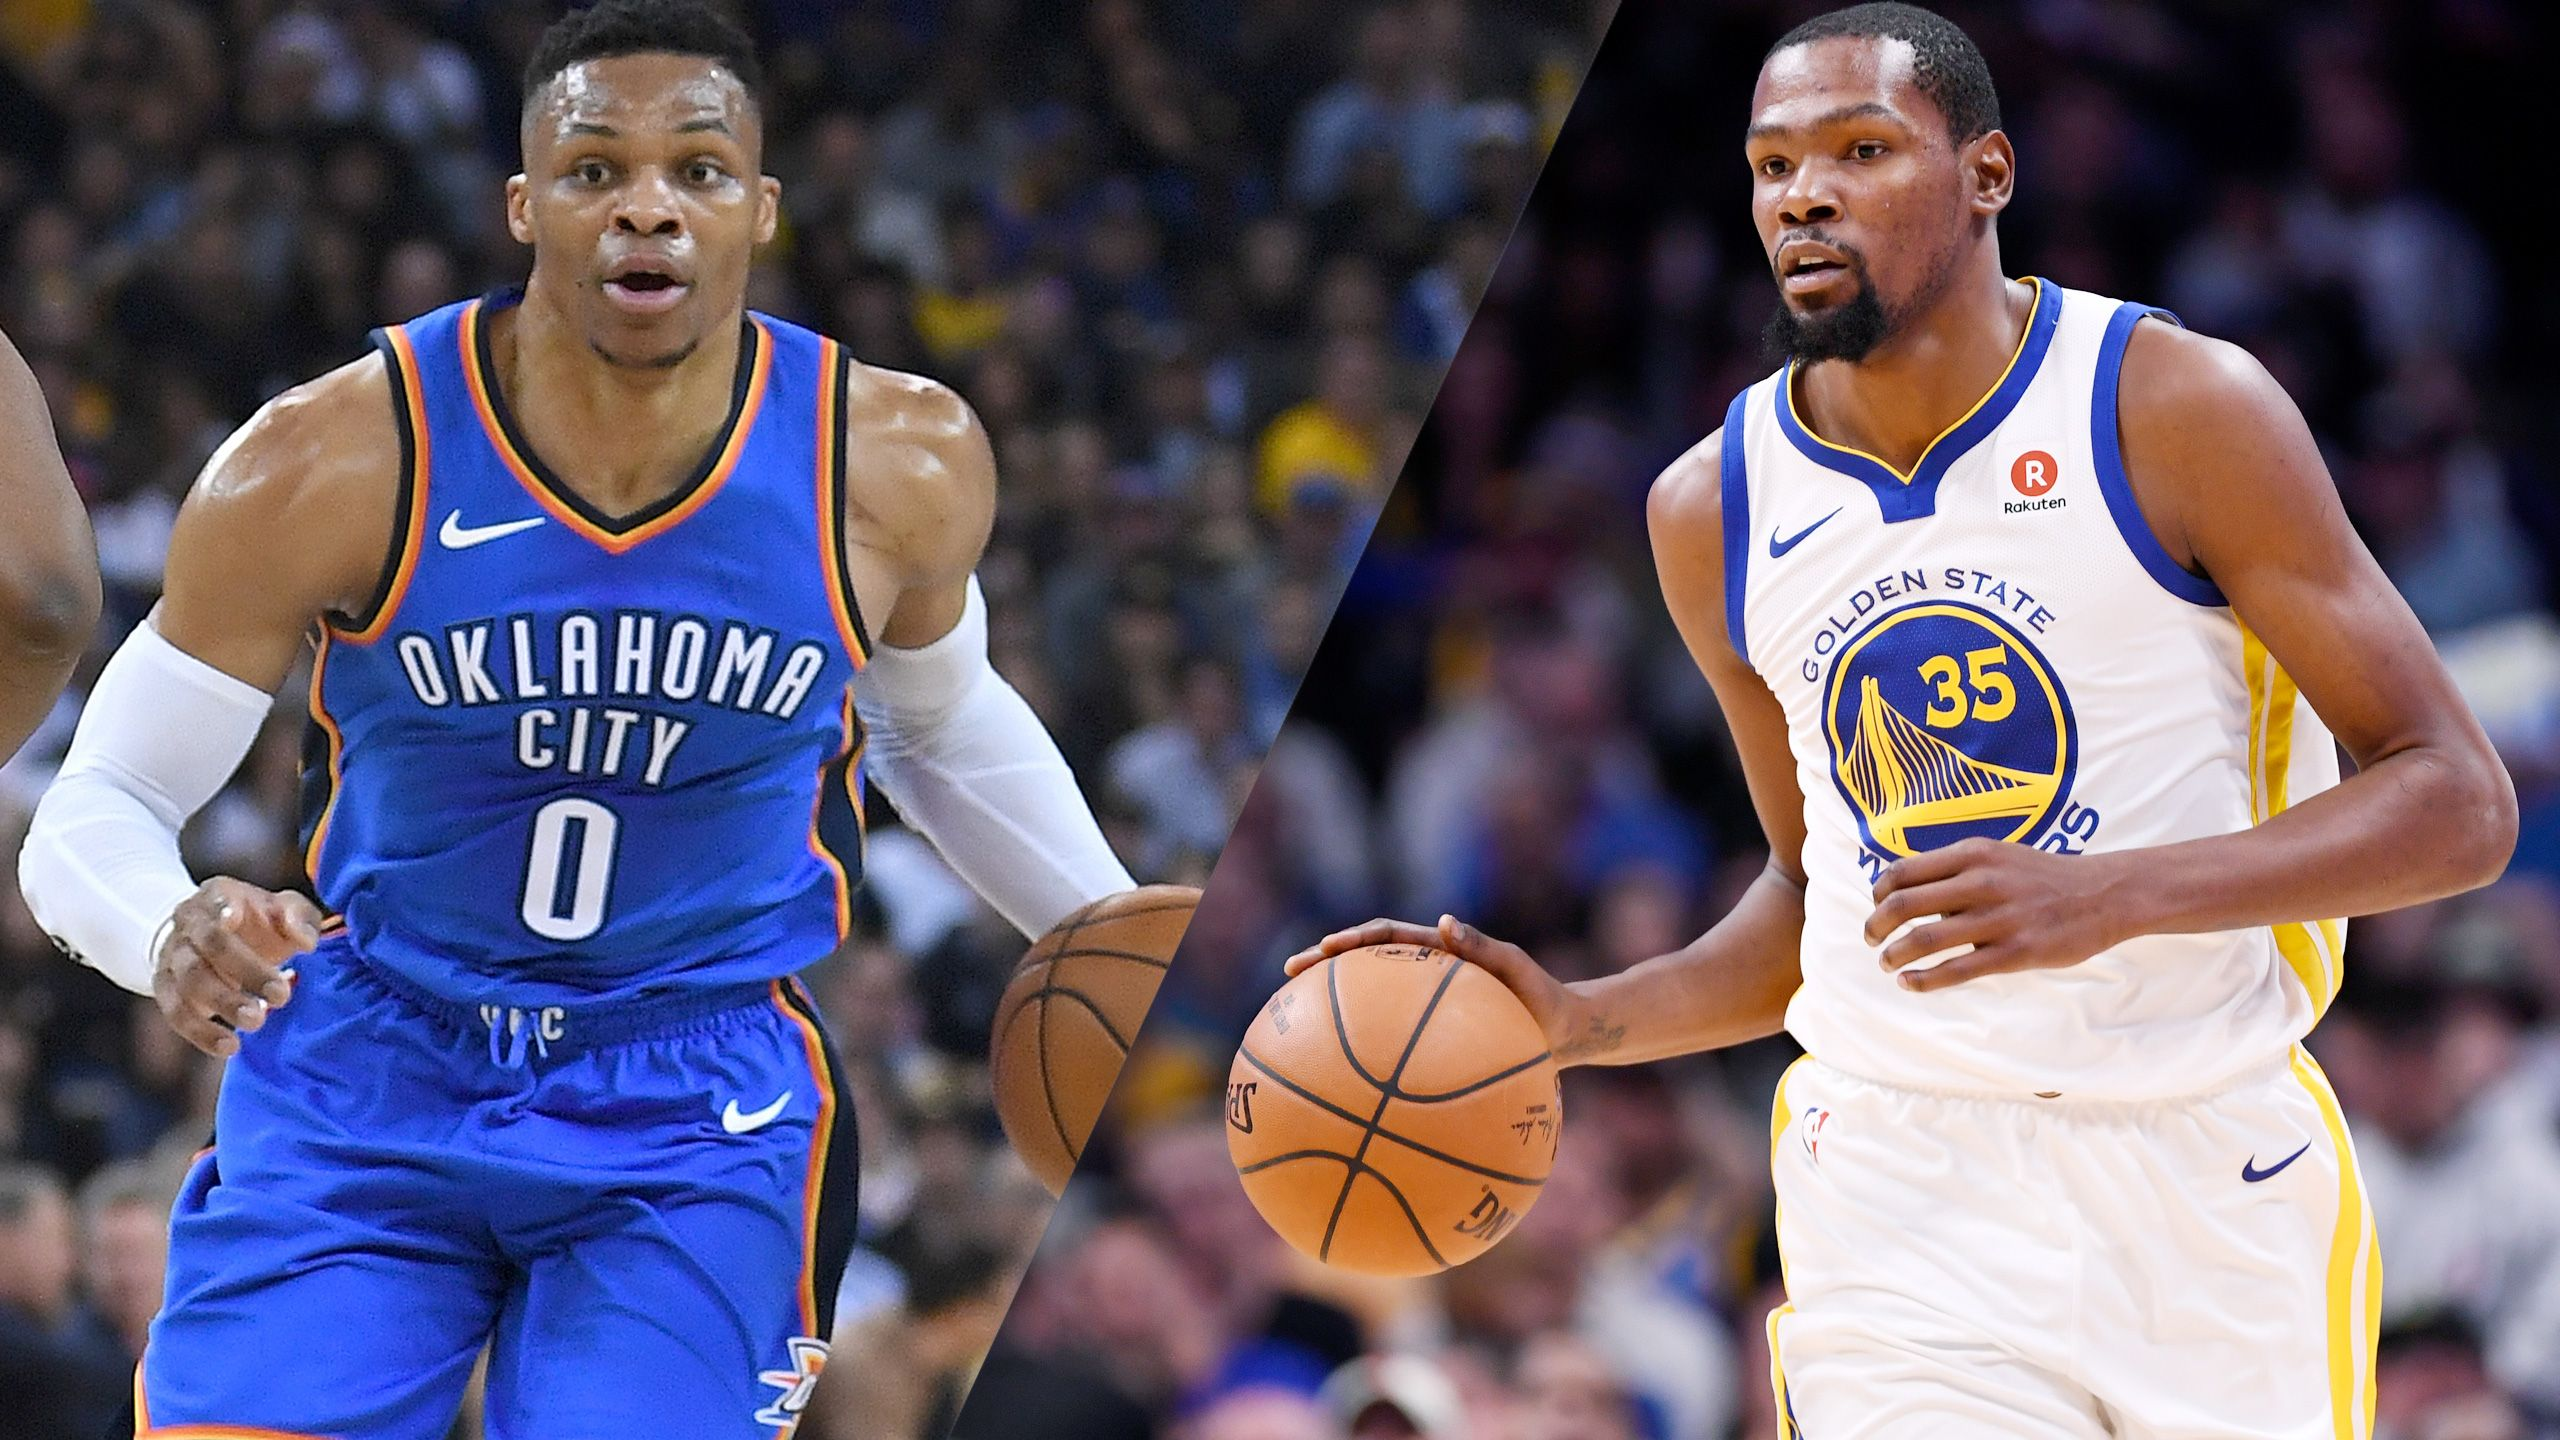 Oklahoma City Thunder vs. Golden State Warriors (re-air)